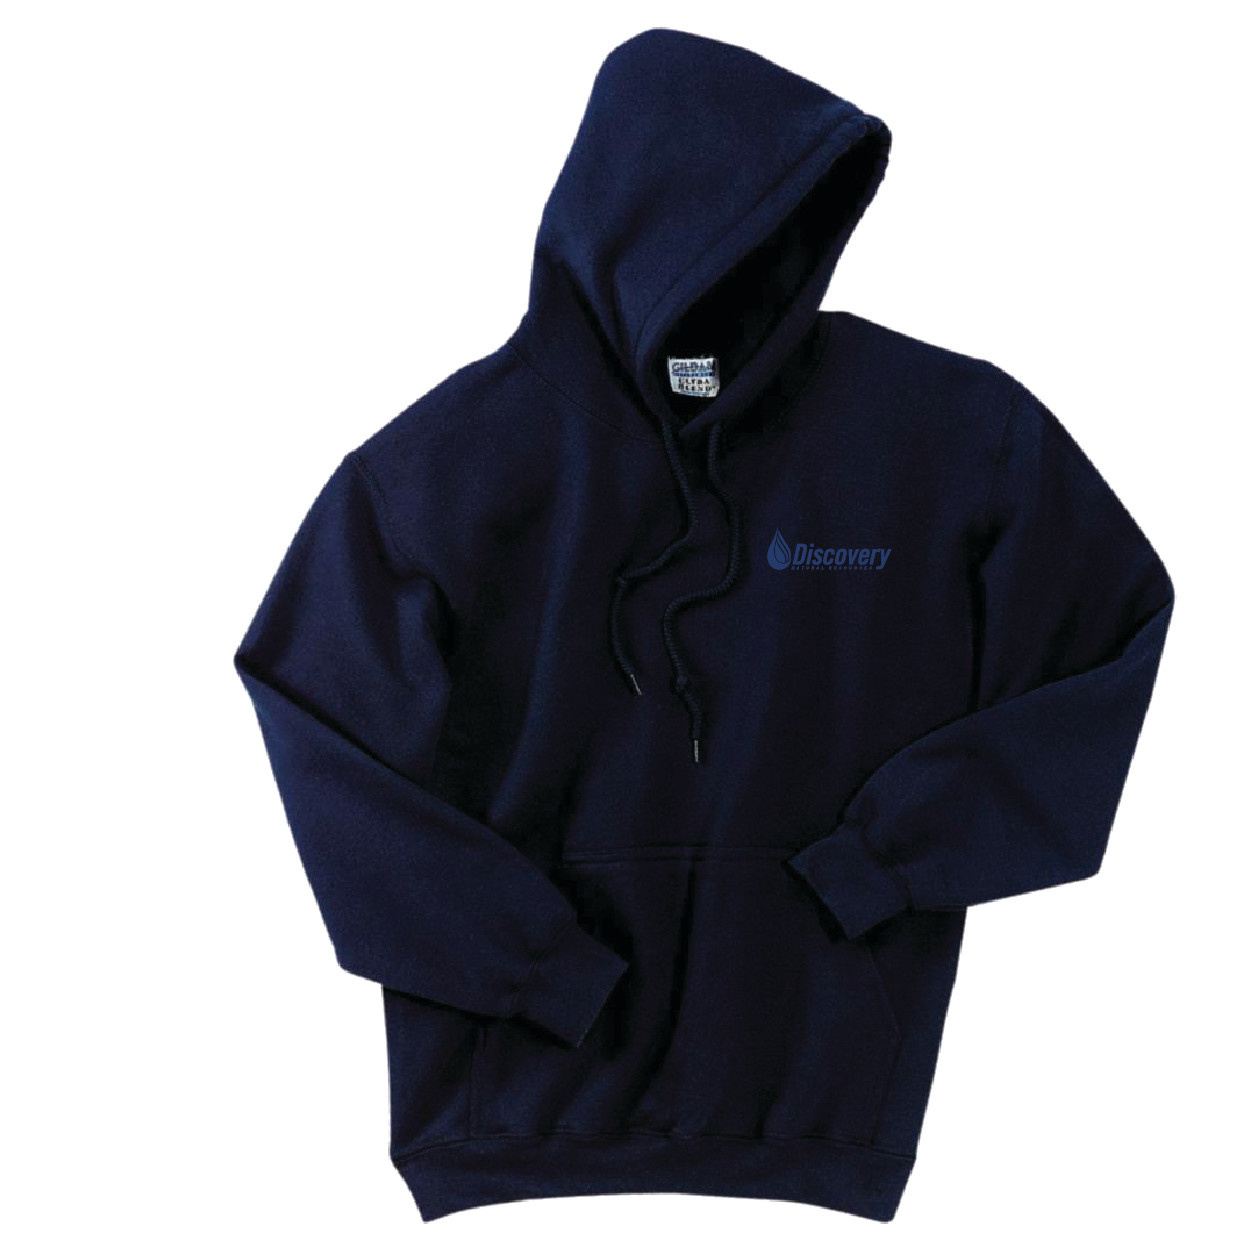 Gildan Gildan Dry Blend Pullover Hooded Sweatshirt (Navy)